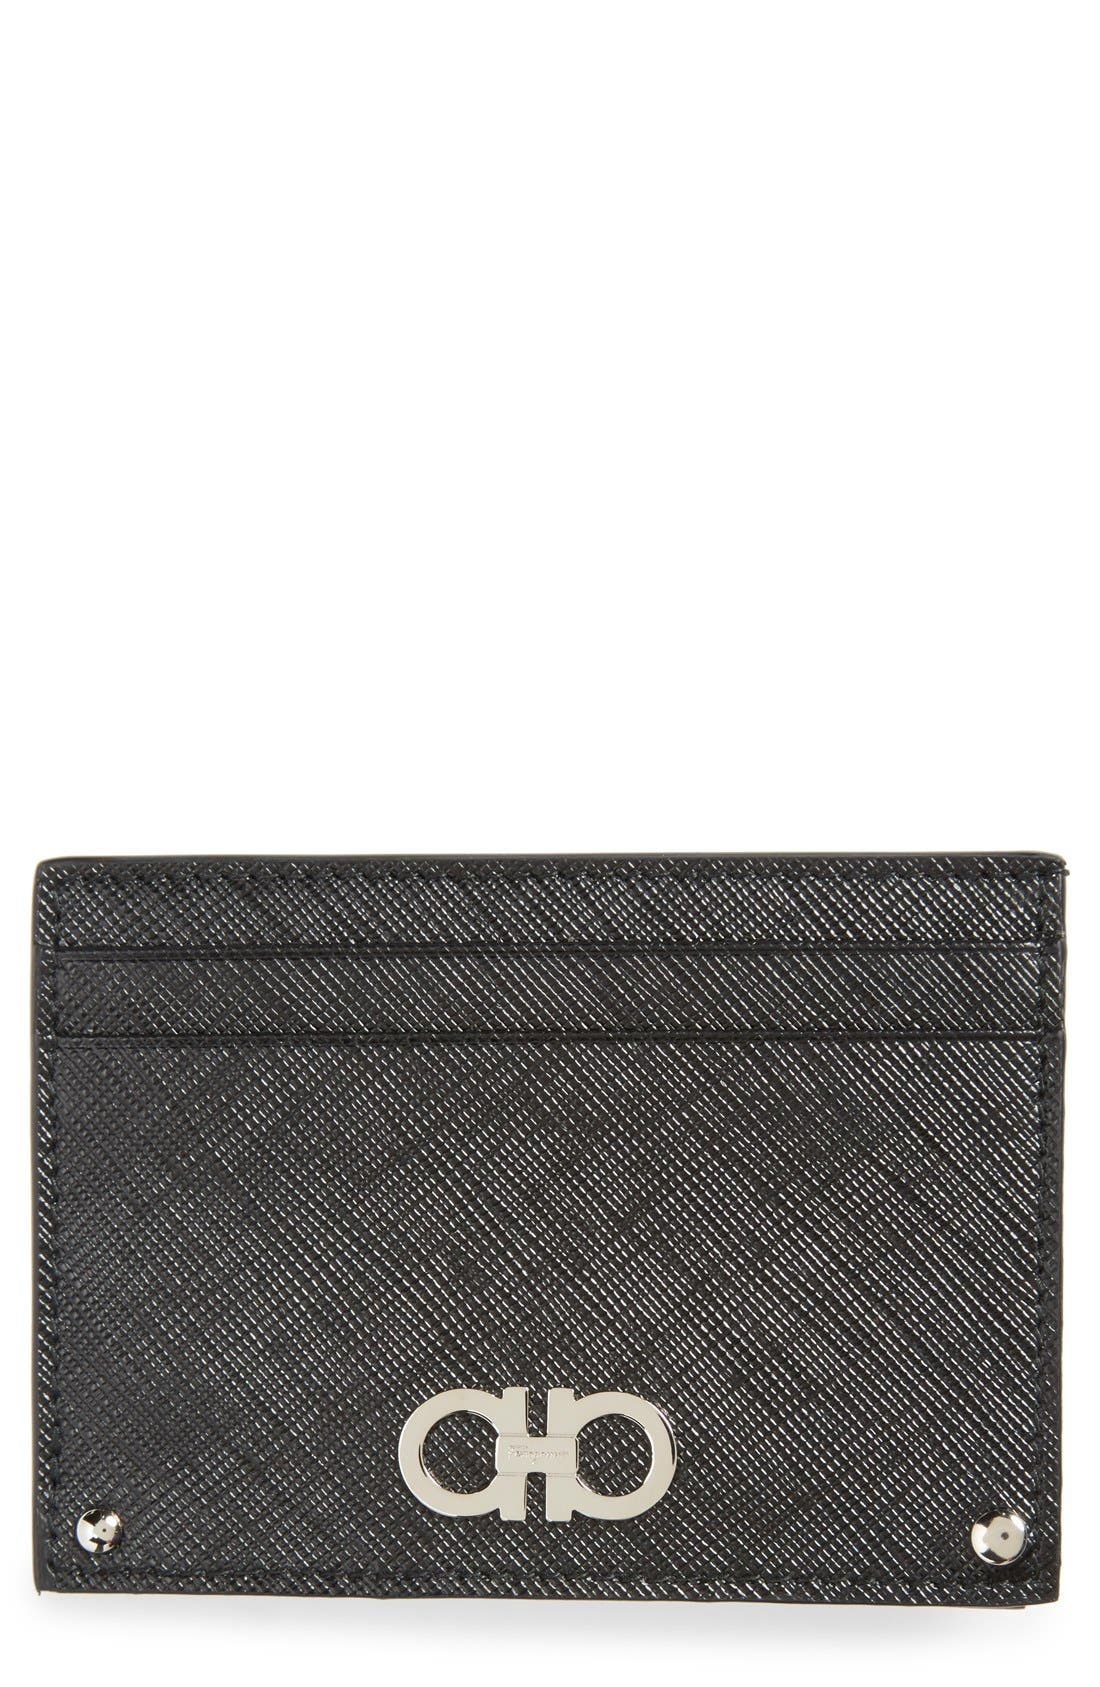 Salvatore Ferragamo Saffiano Leather Card Case